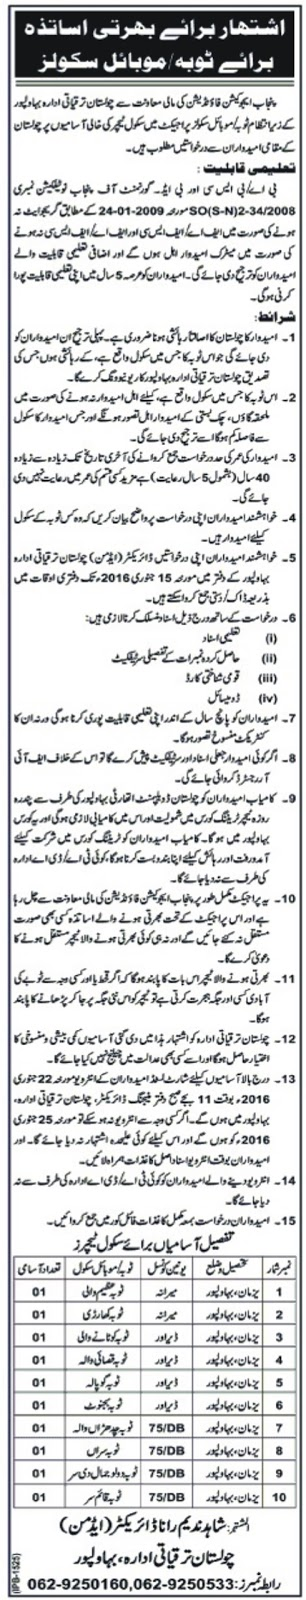 Teachers Jobs in Punjab Education Foundation BahawalPur